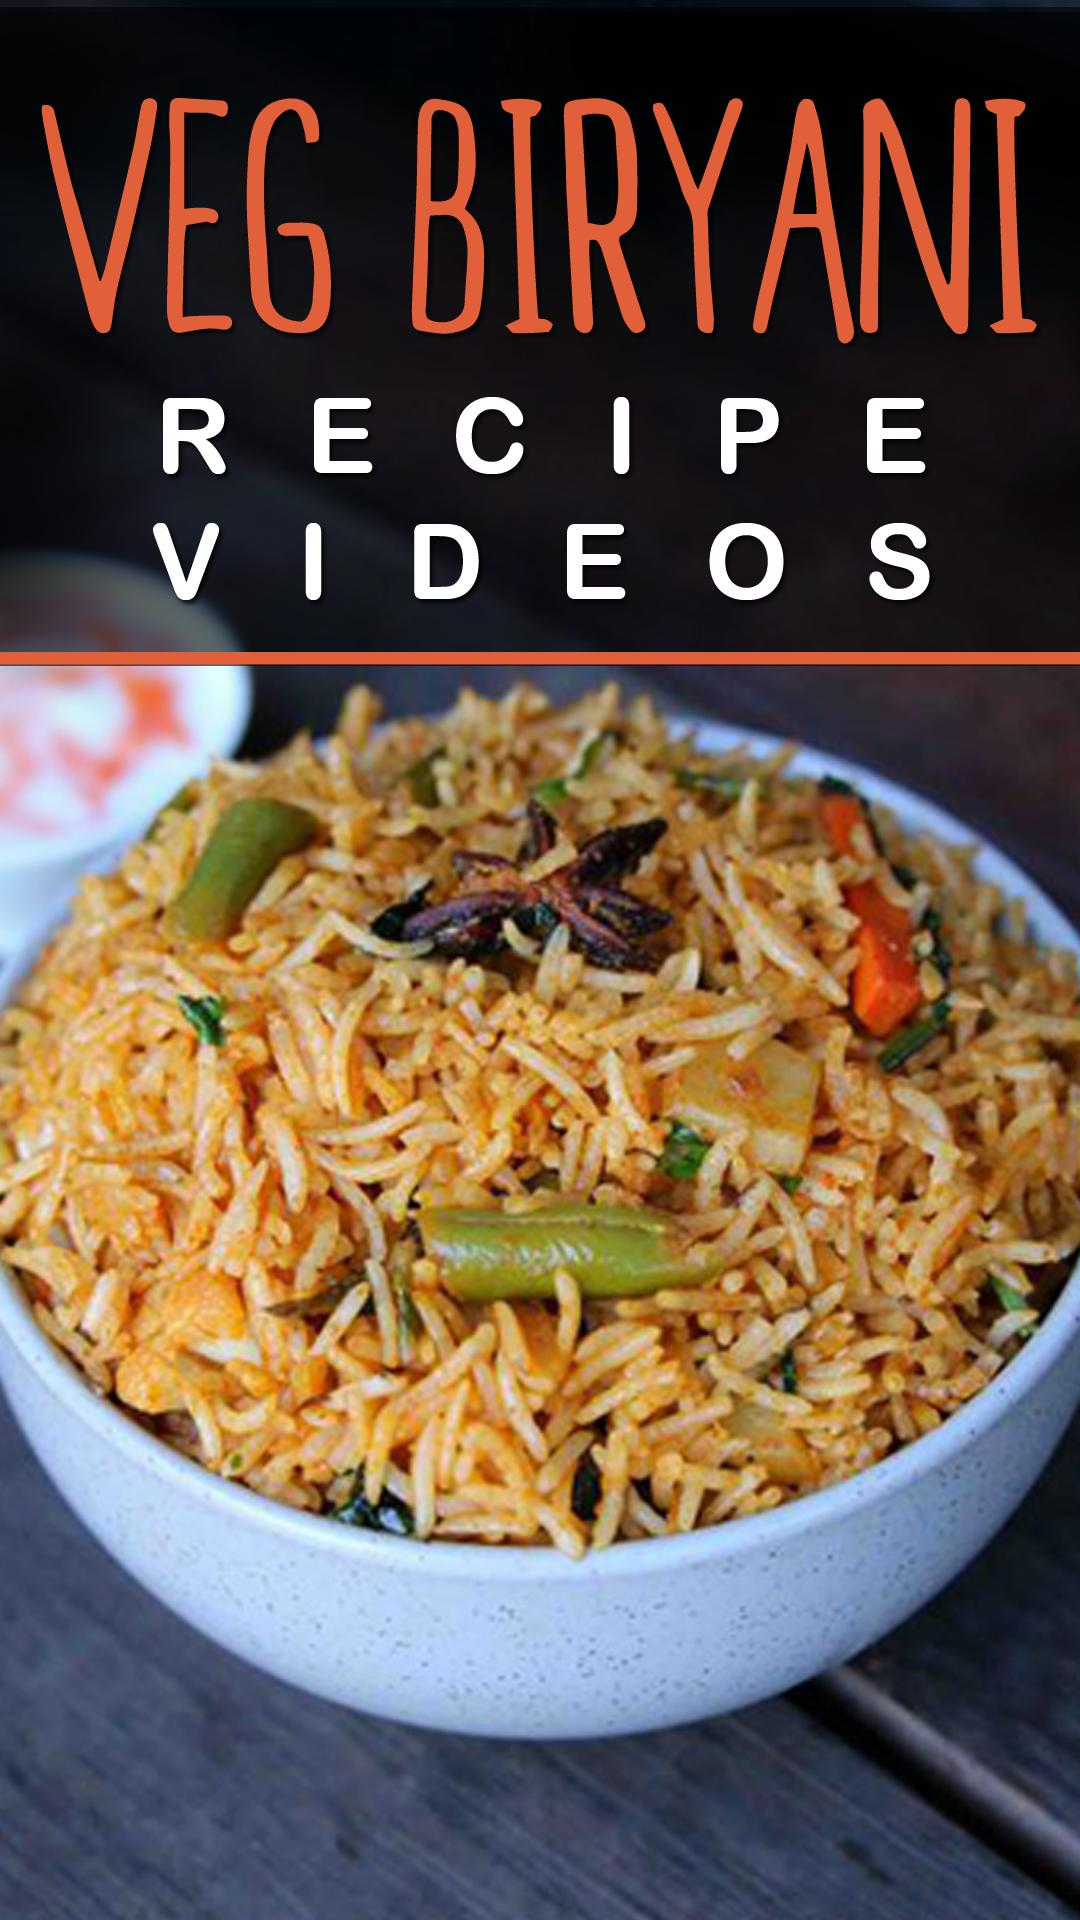 Veg Biryani Recipe For Android Apk Download